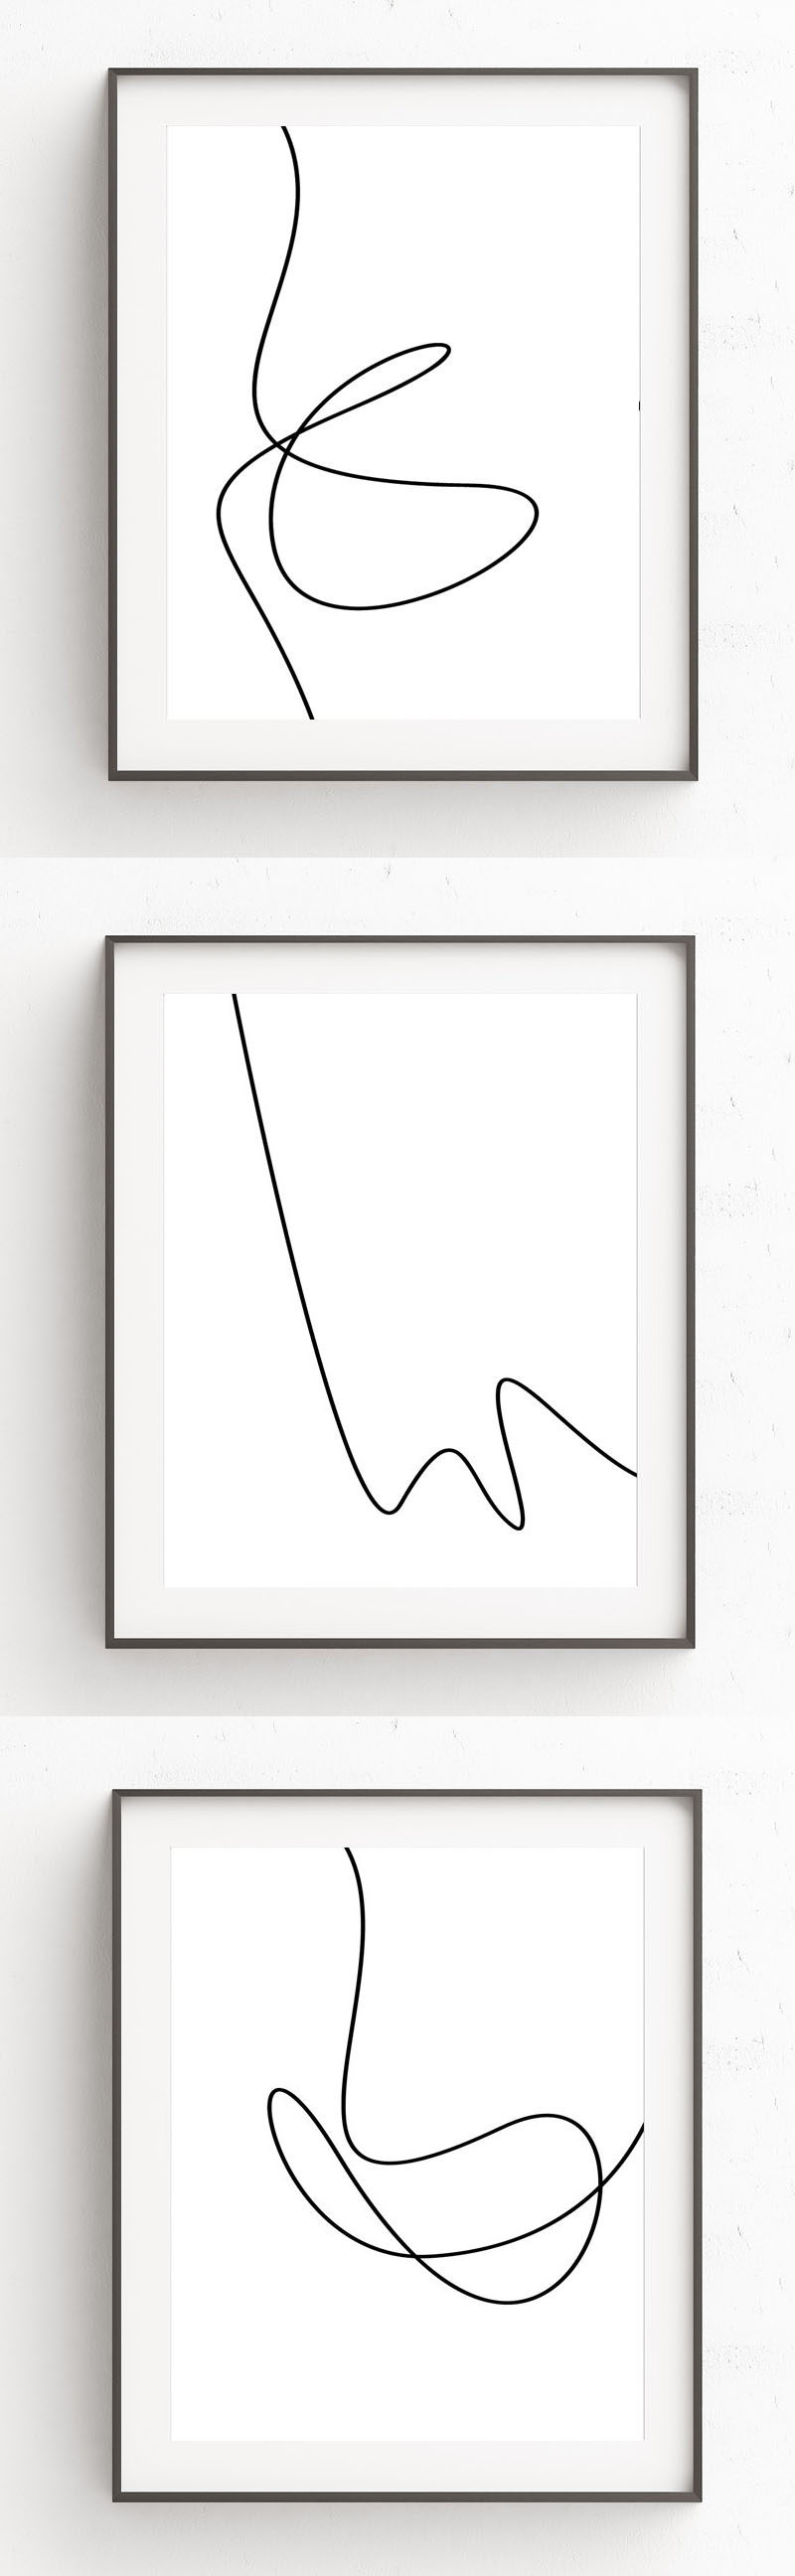 Oju Design has created this collection of modern minimalist line art prints that have single black lines with smooth curves interrupting the all white backgrounds to create art that's simple and easy to look at.